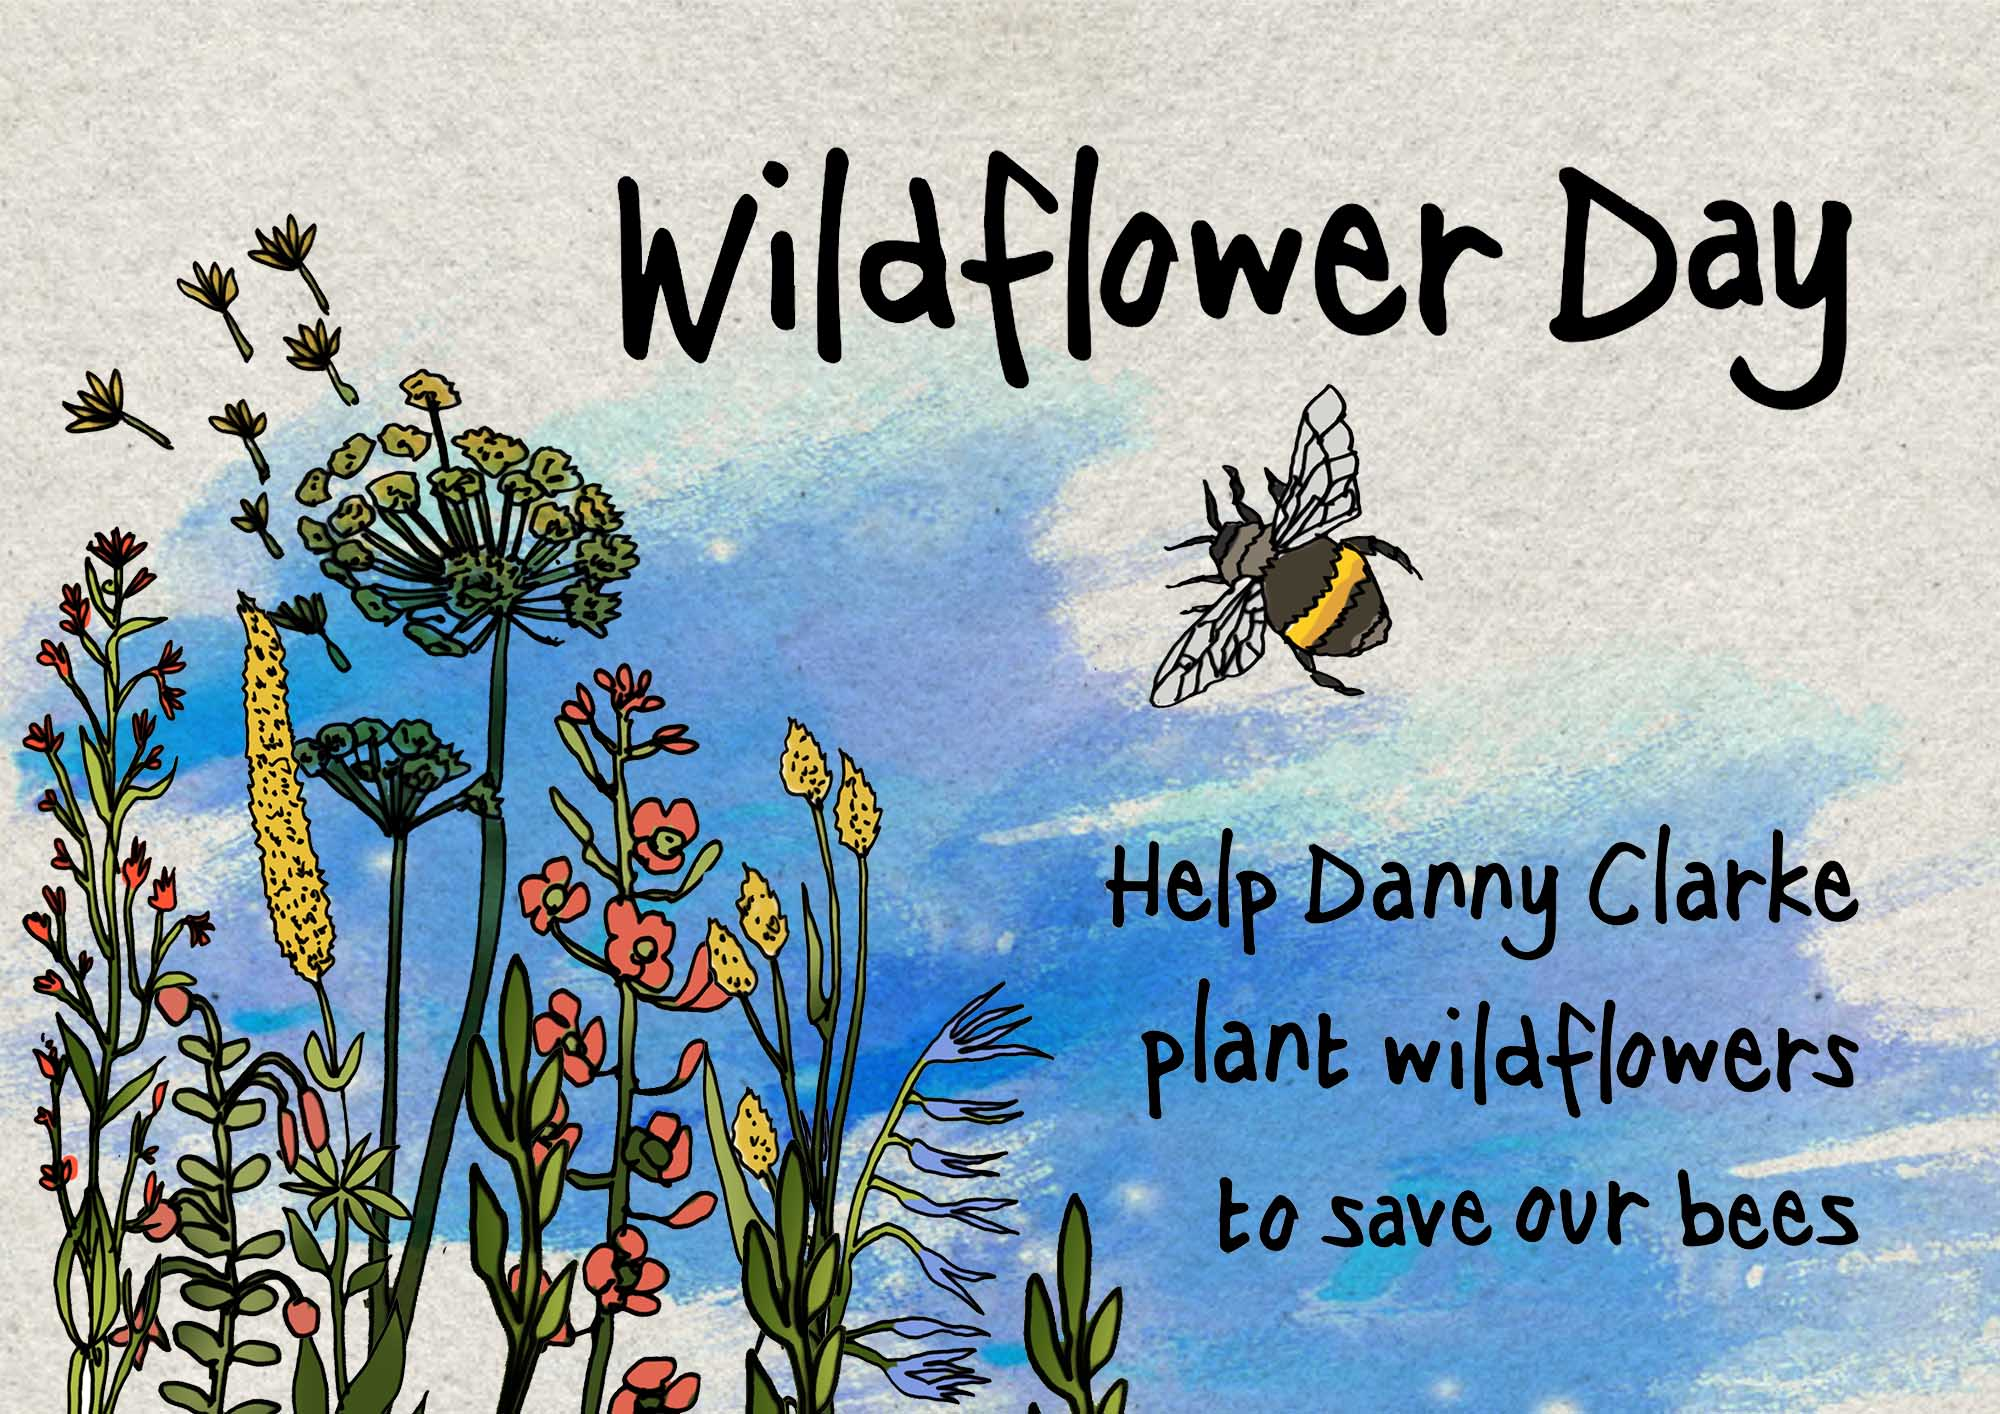 Danny Clarke's National Wildflower Day